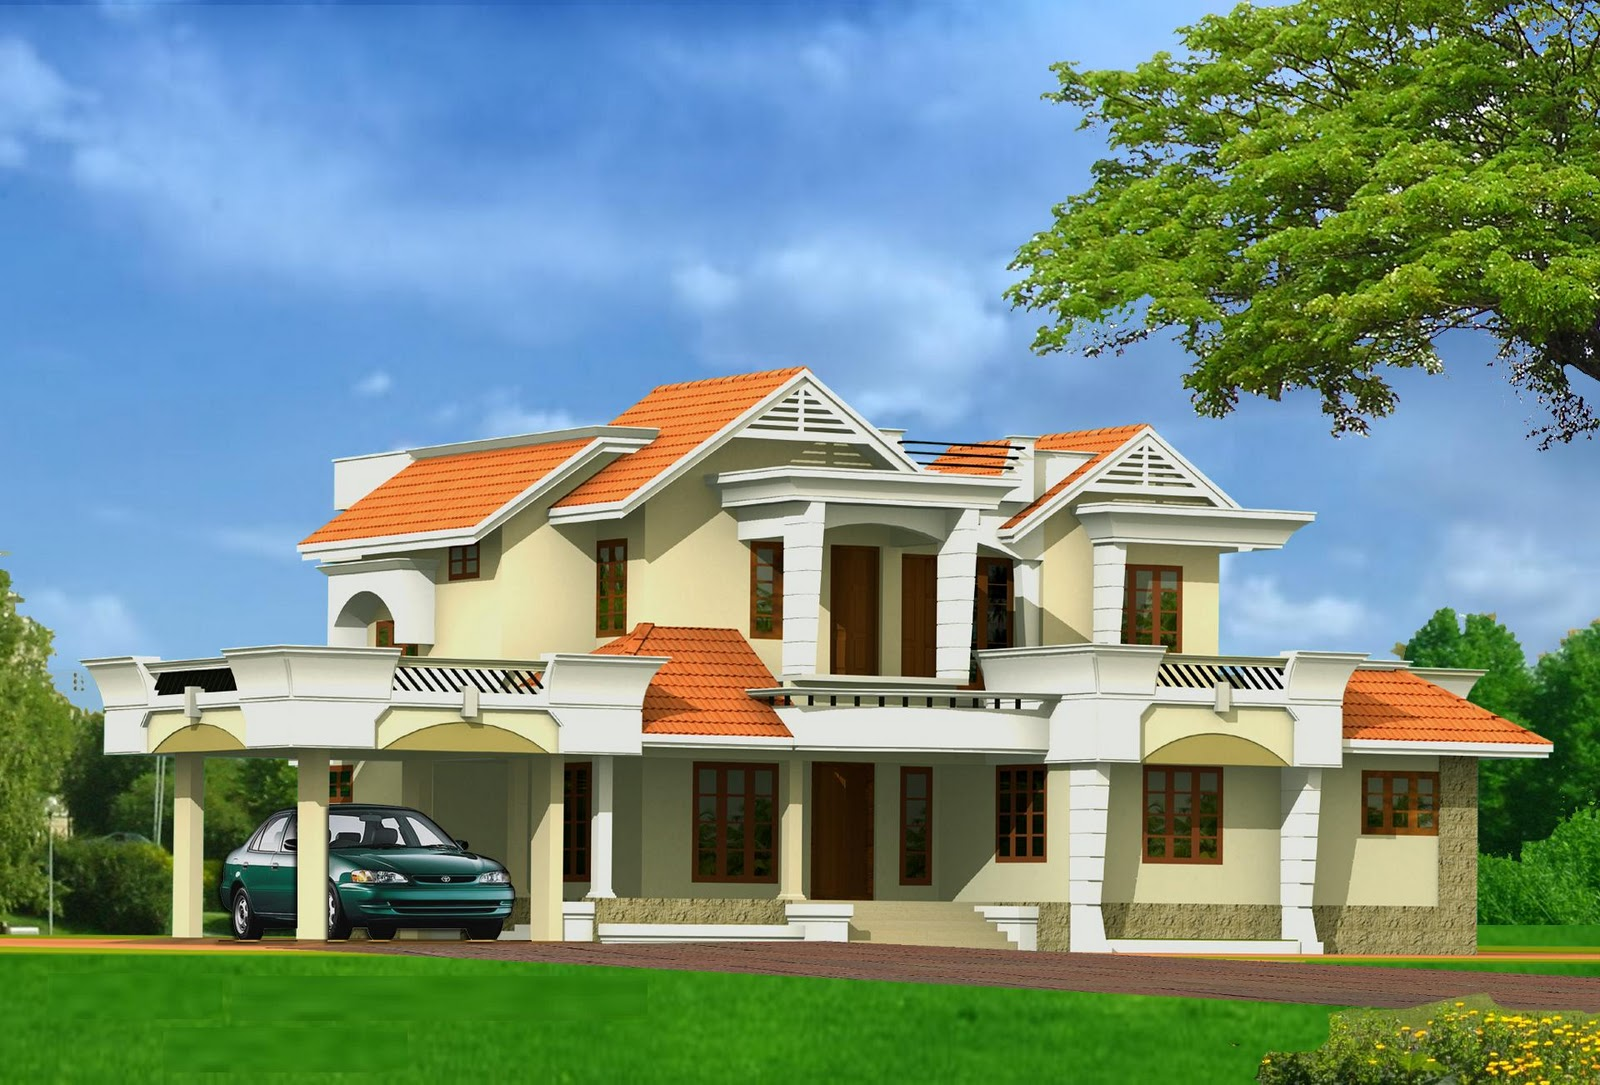 House plans and design architectural designs of for Building designer